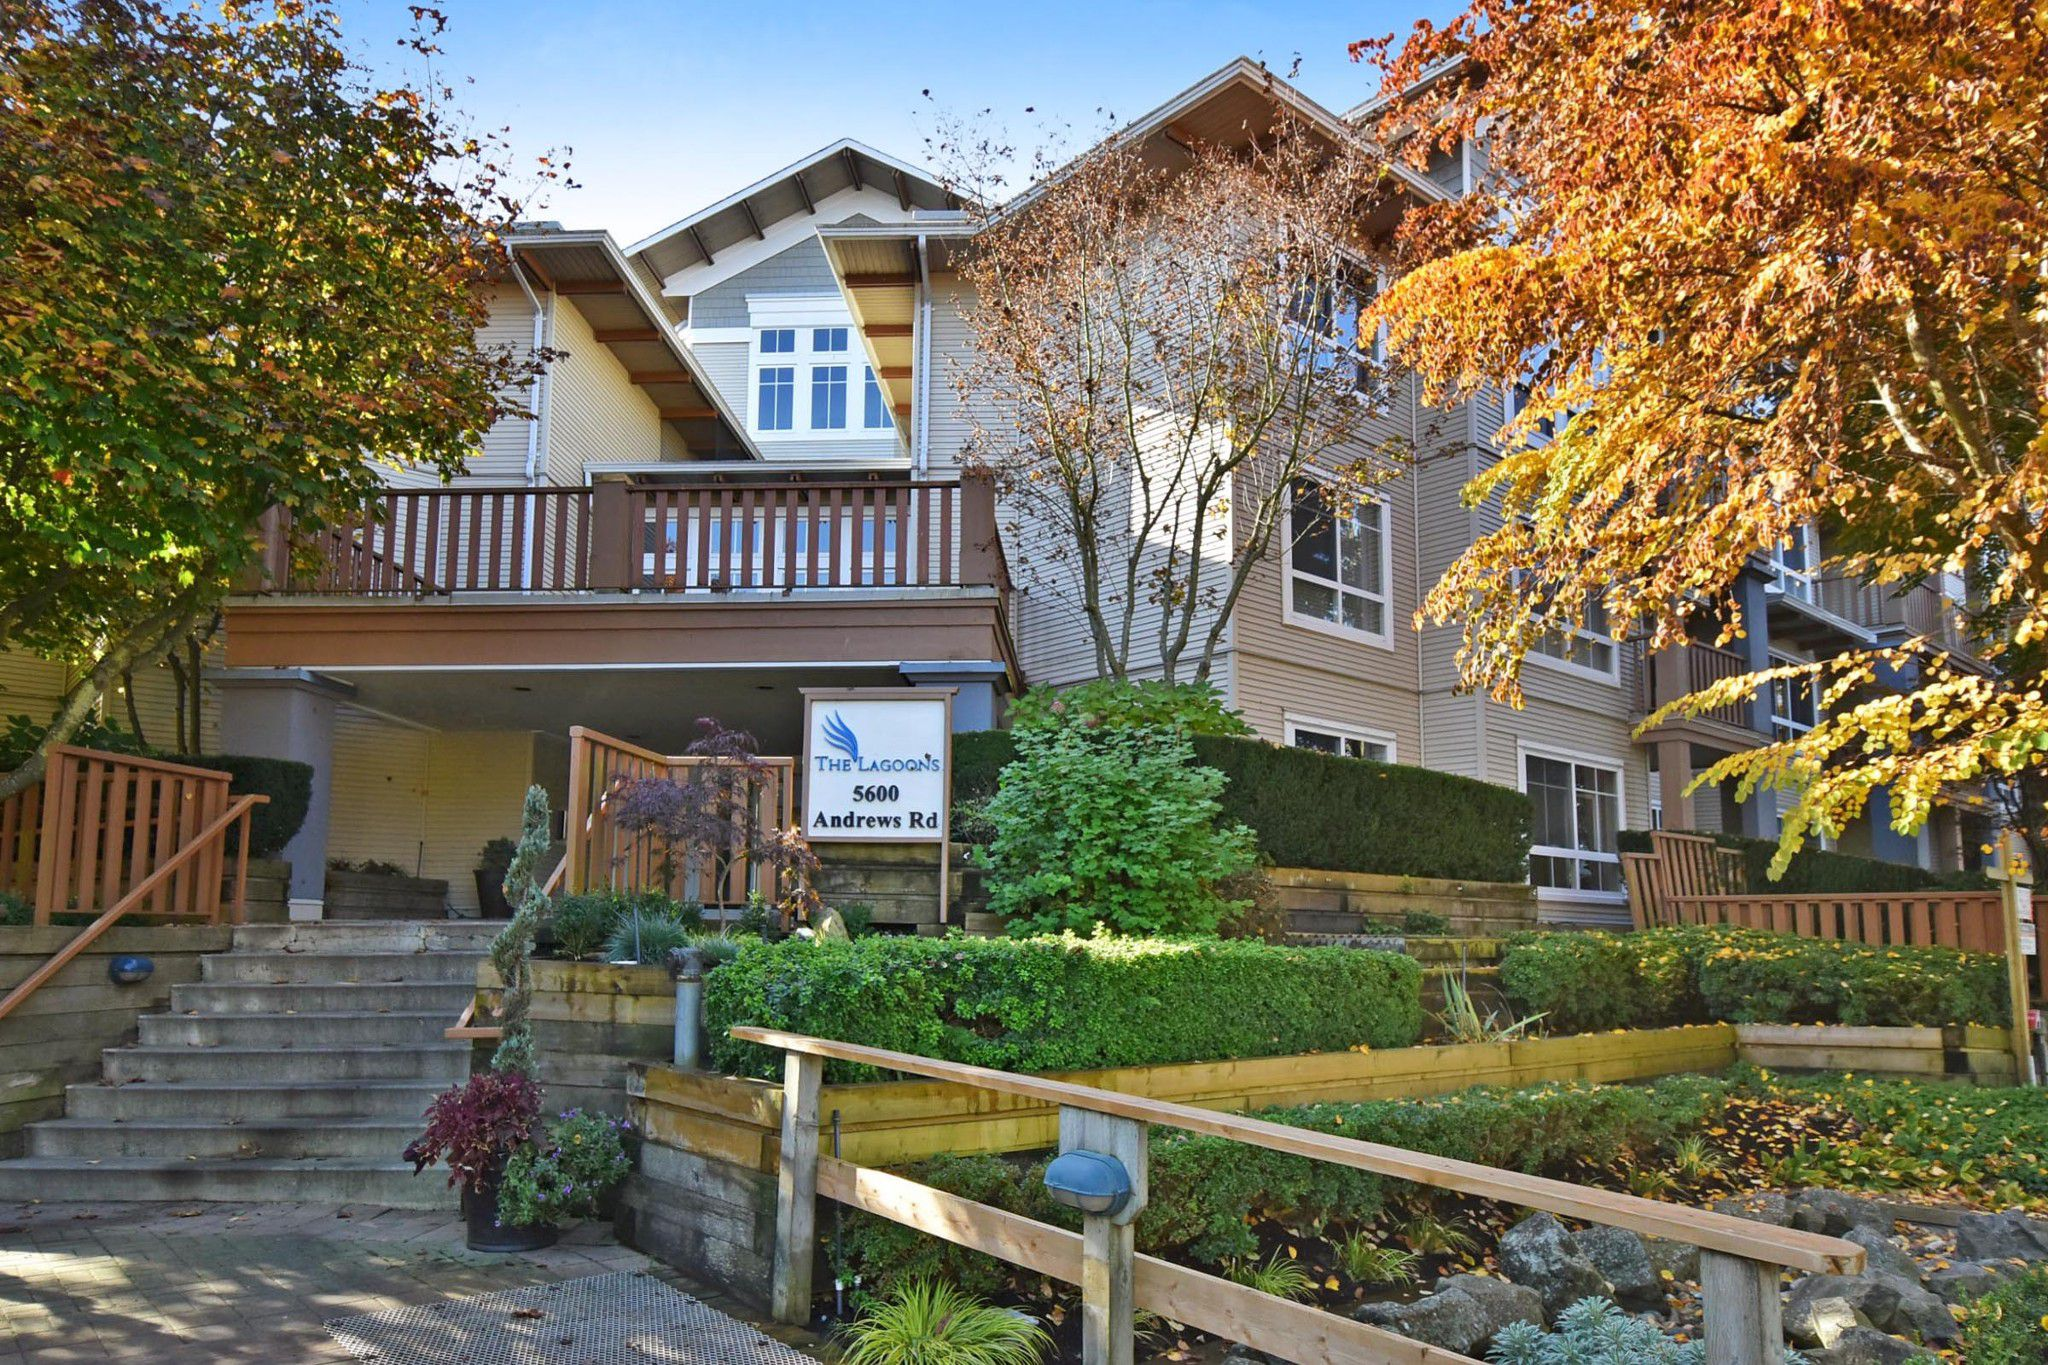 """Main Photo: 231 5600 ANDREWS Road in Richmond: Steveston South Condo for sale in """"THE LAGOONS"""" : MLS®# R2316743"""